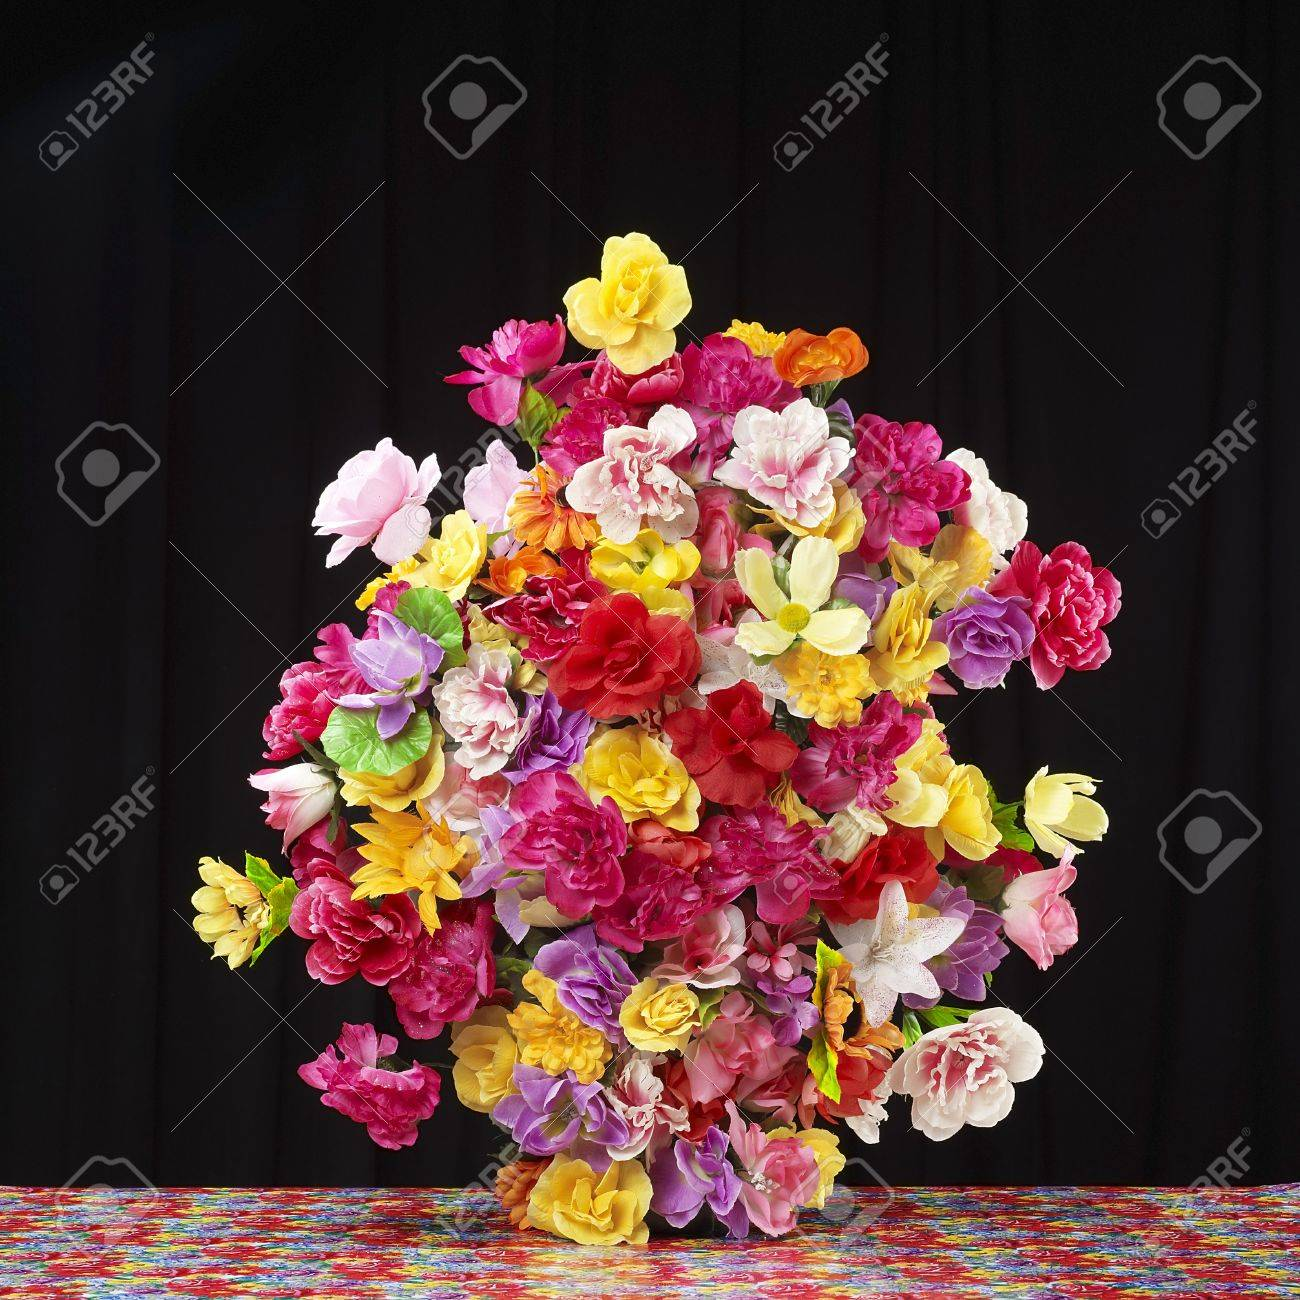 Big Flower Bouquet Against Black Background Stock Photo Picture And